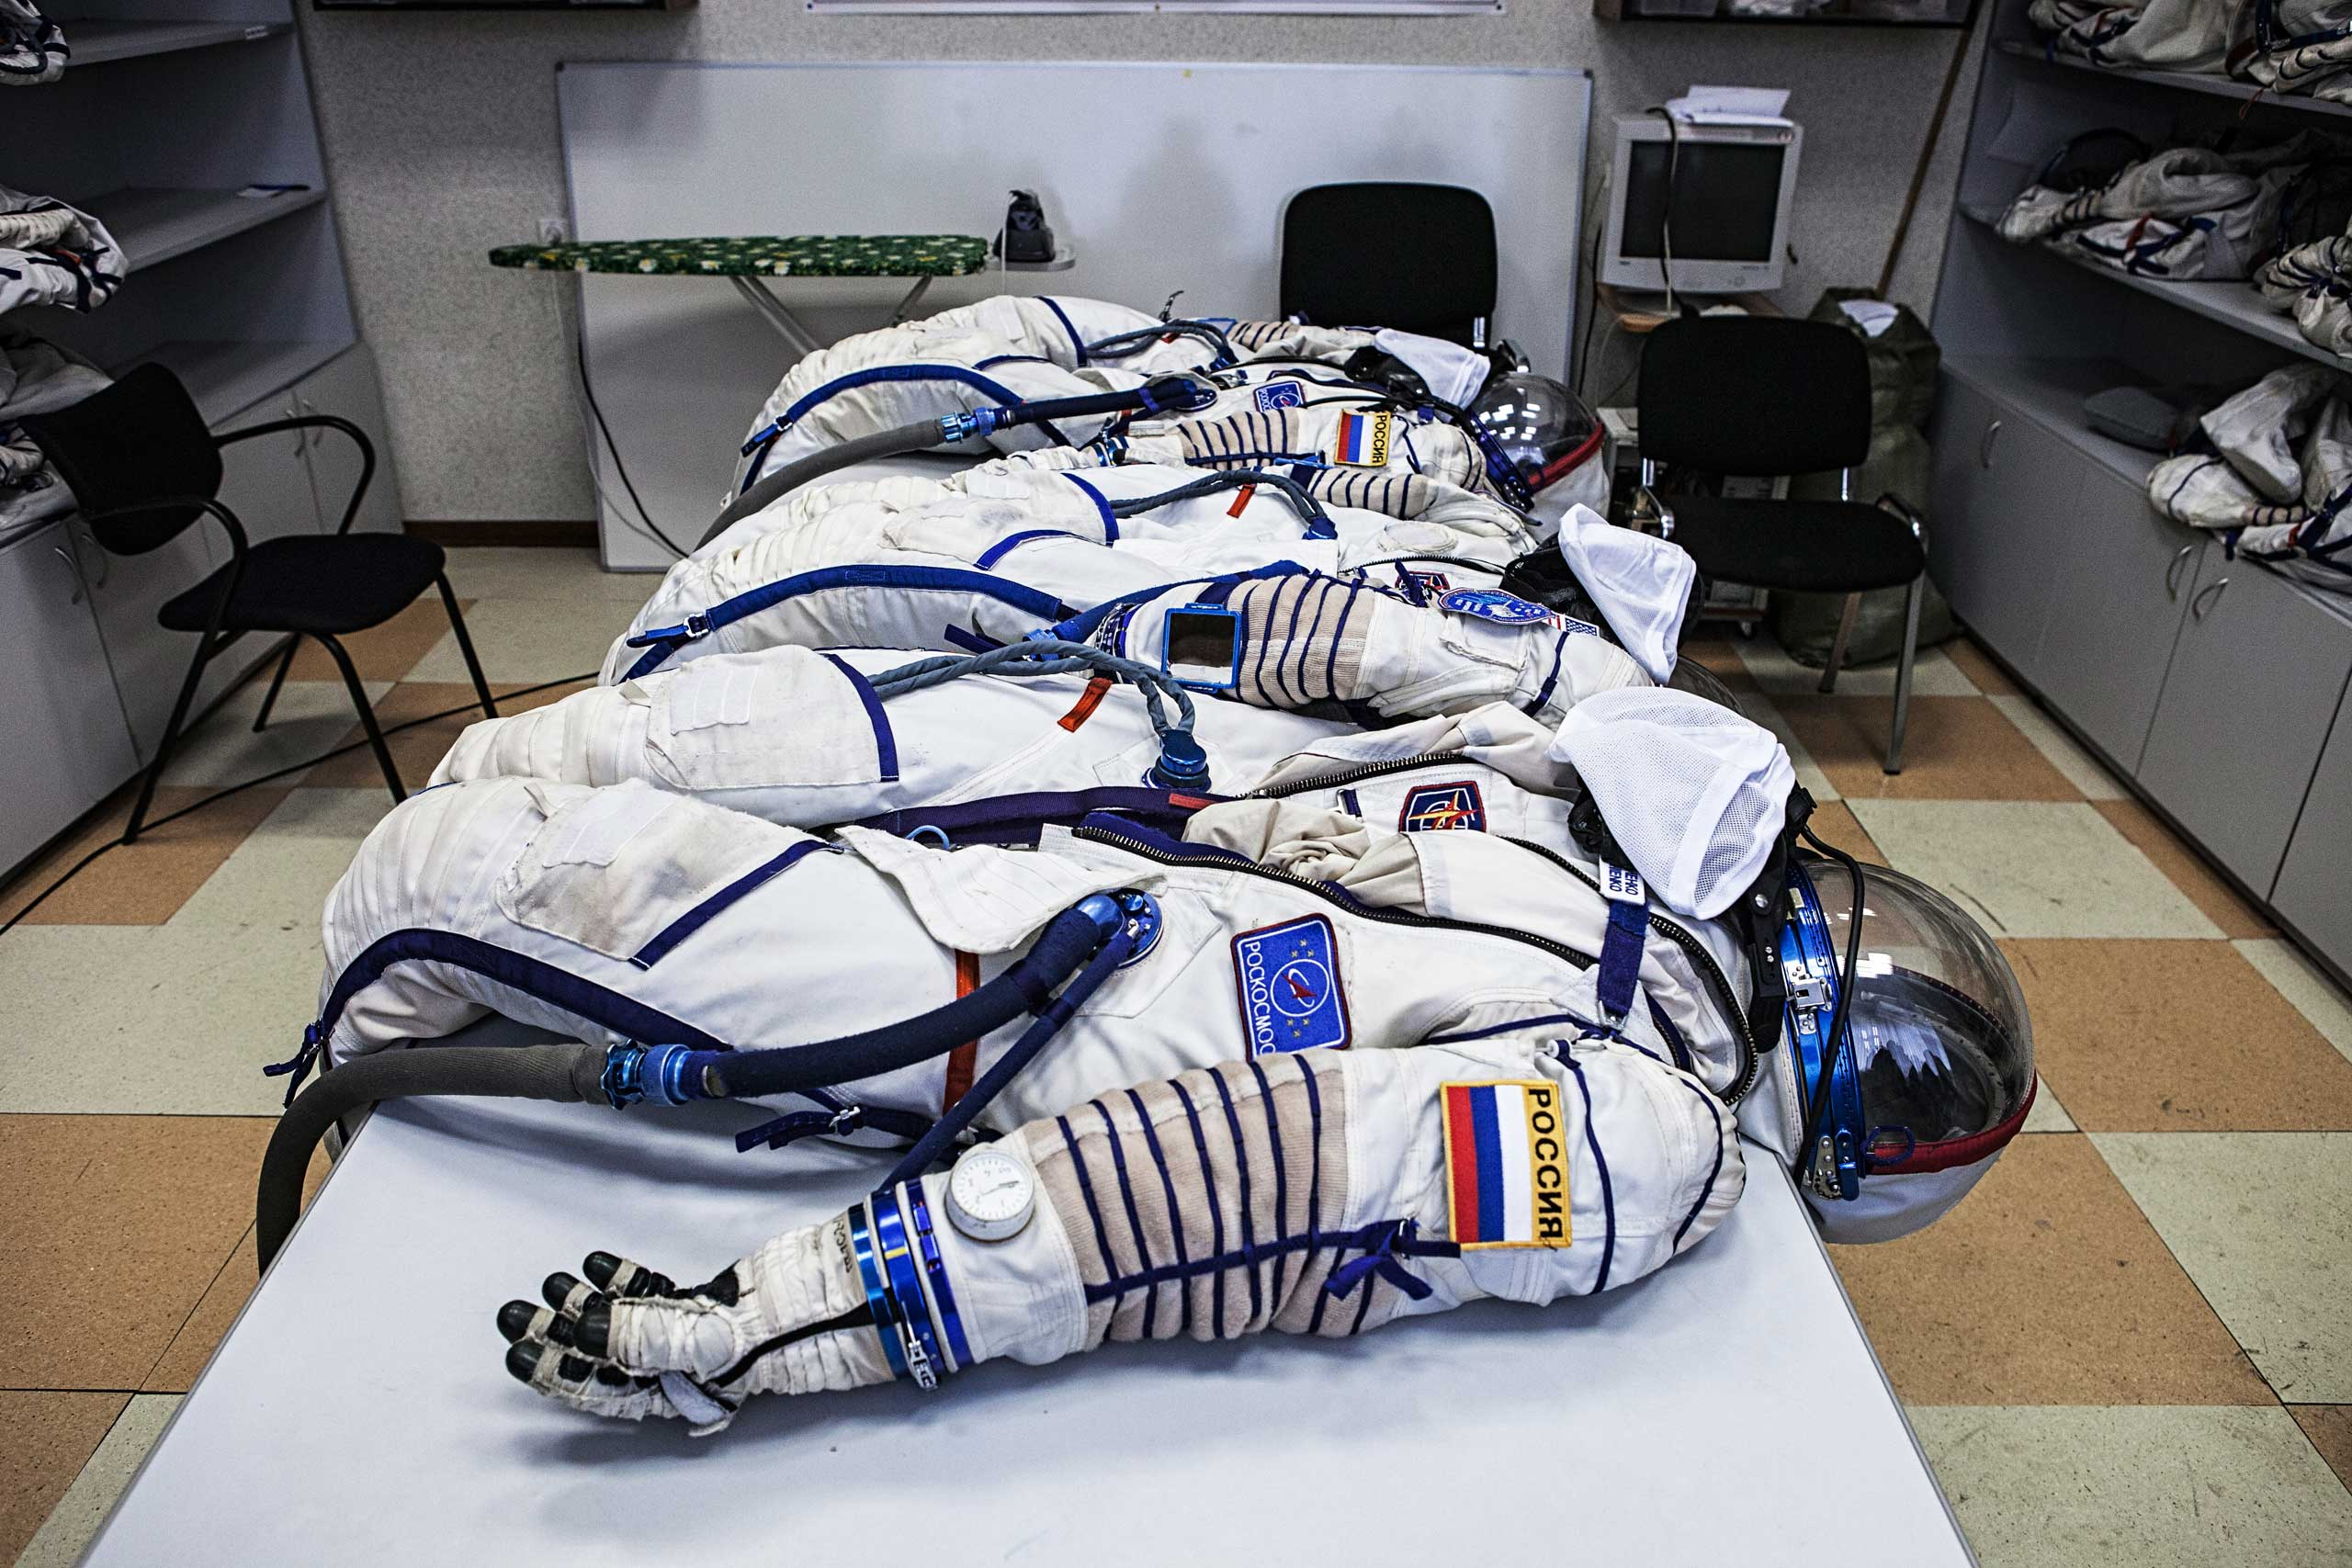 Russian Sokol suits, used for launch into orbit and reentry from space, are seen at the Yuri Gagarin Cosmonaut Training Center in Star City, Russia on March 5, 2015.